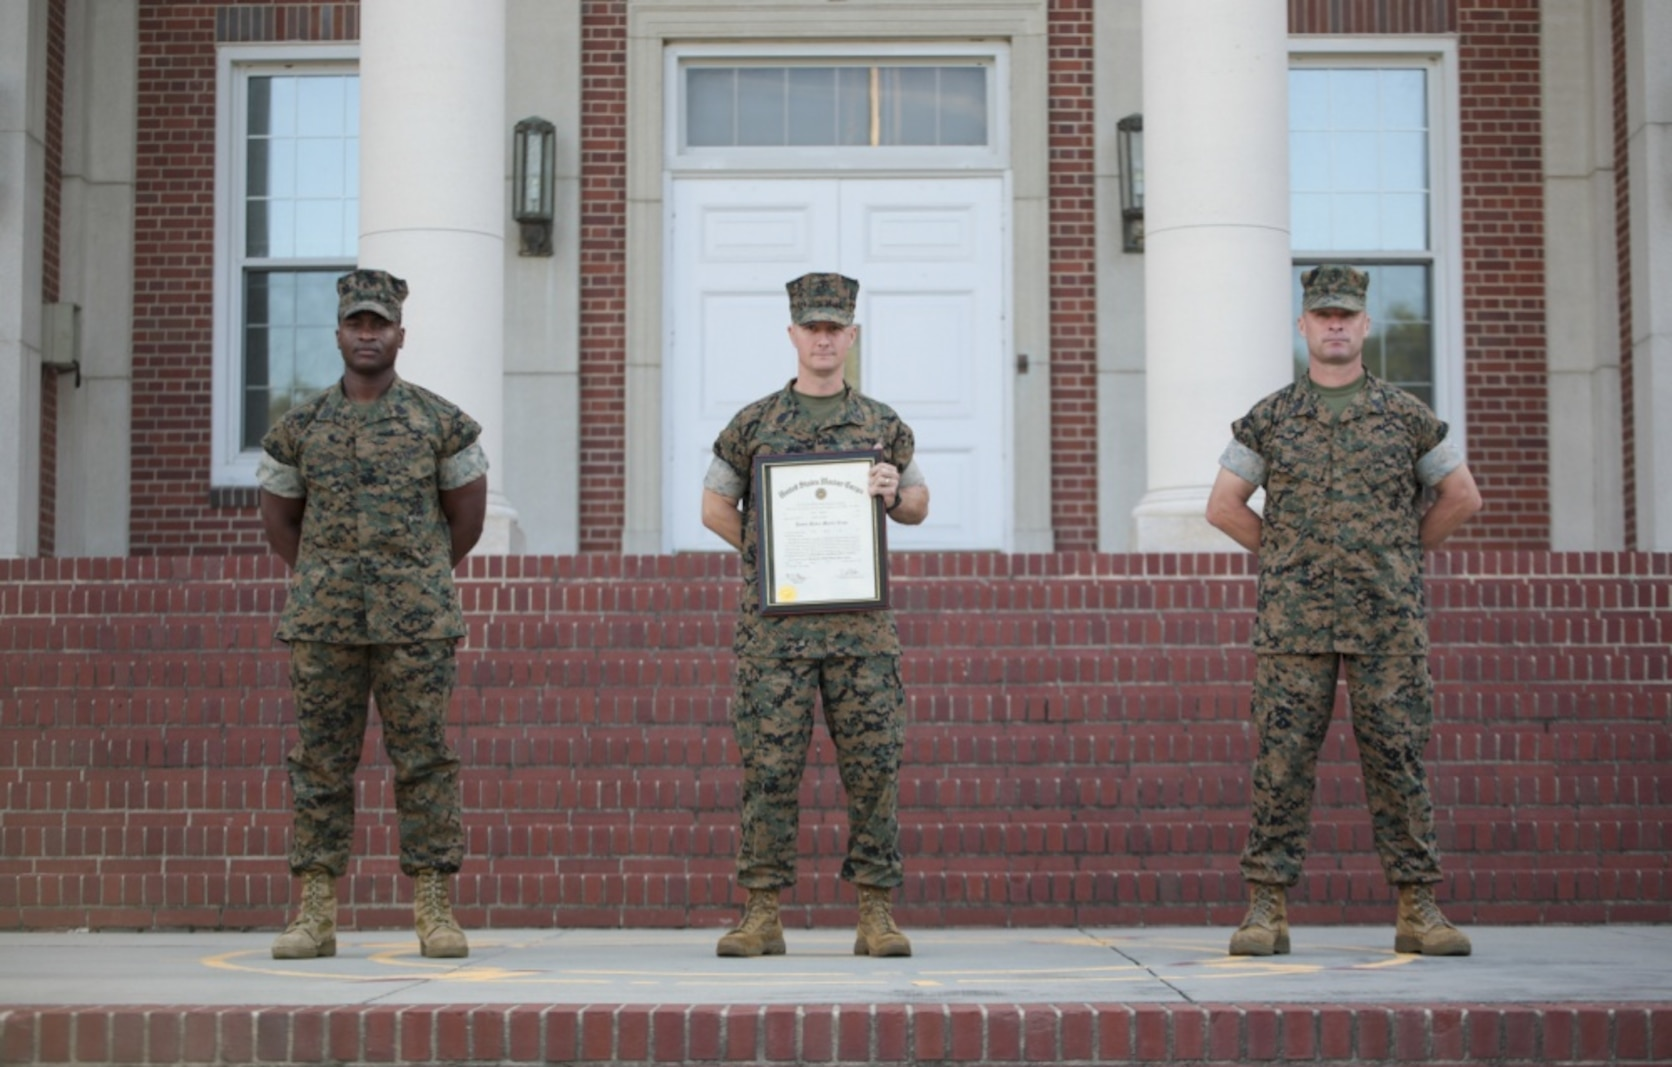 Master Sgt. Justin Gregory stands with his recruiter Master Gunnery Sgt. Dinky Byers and senior drill instructor Master Gunnery Sgt. Doug Mrusek after Gregory's promotion on Marine Corps Recruit Depot Parris Island S.C. July 1, 2020.